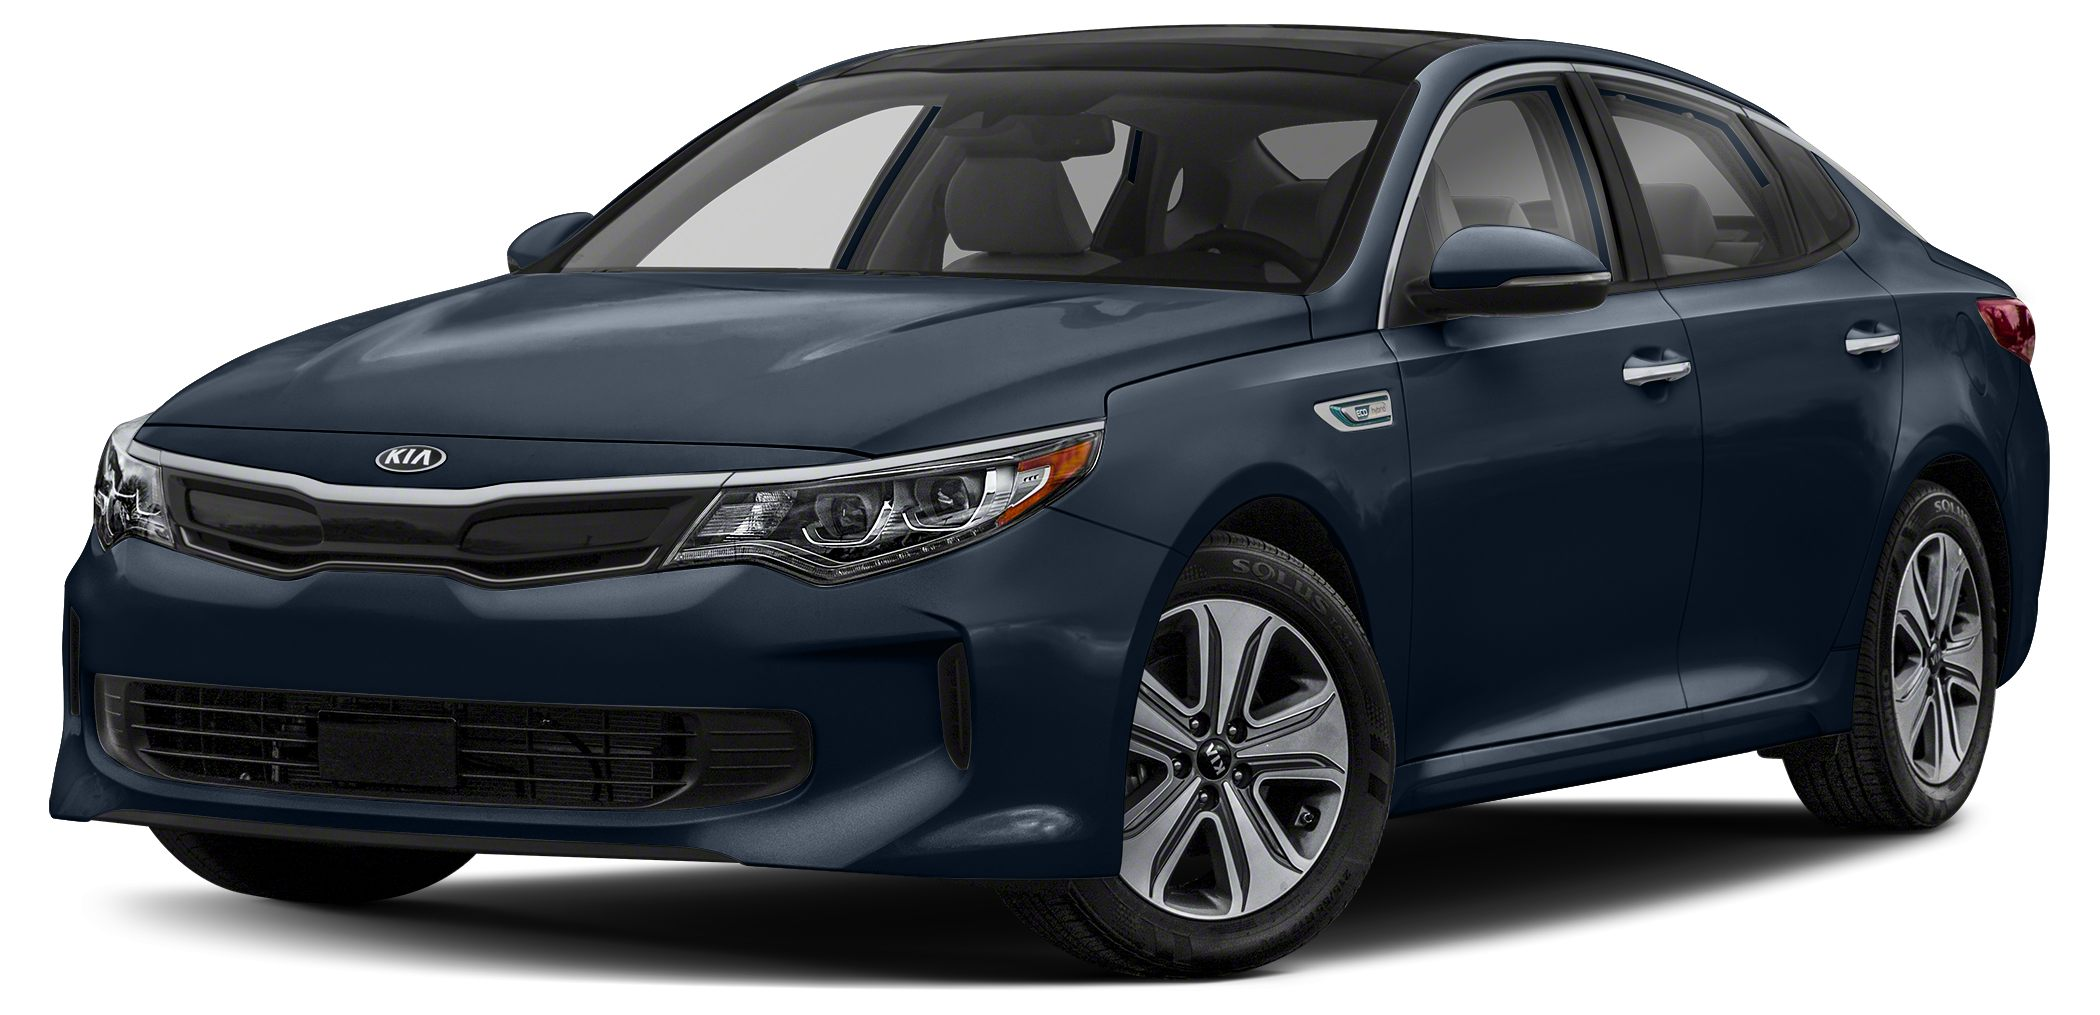 2018 Kia Optima Hybrid Premium Miles 14Color Gravity Blue Stock SB18385 VIN KNAGT4LE9J502313